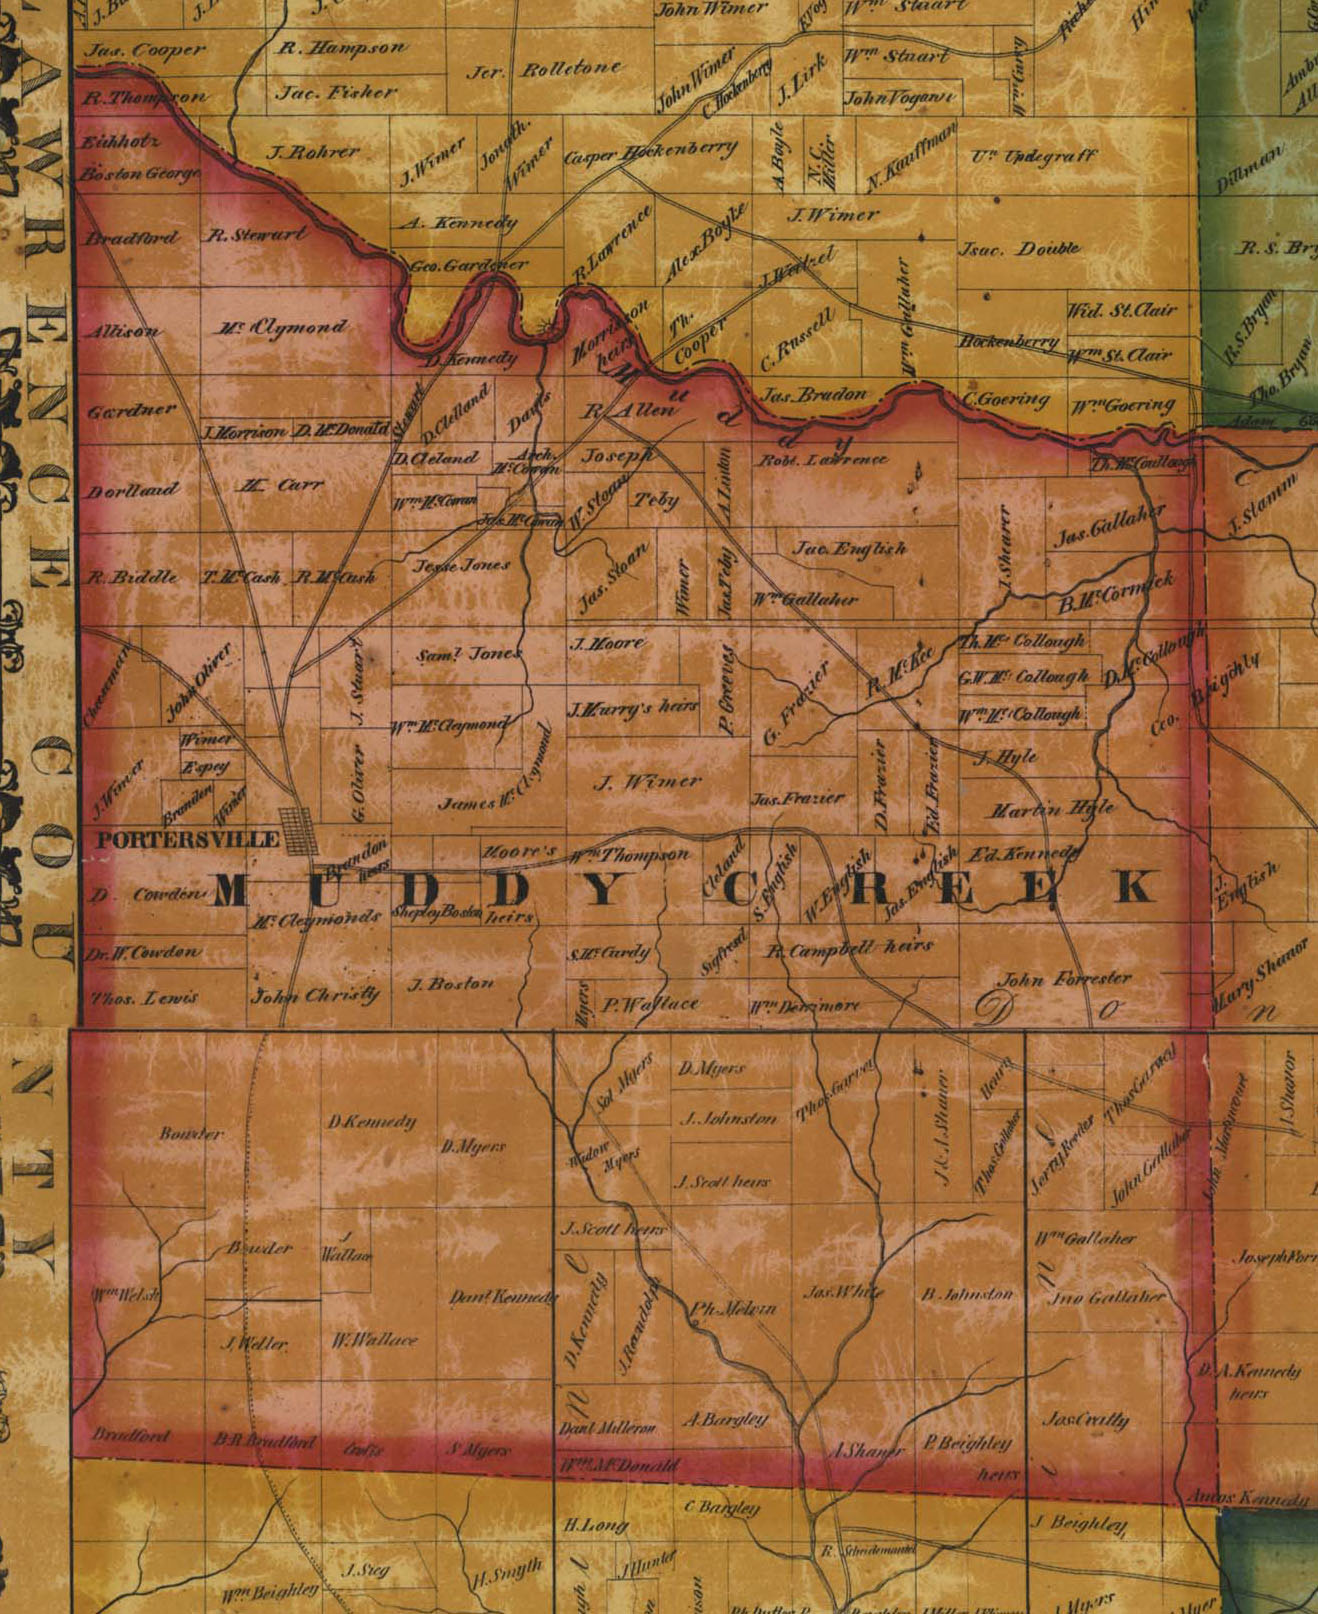 Butler County Tax Map Ancestor Tracks: Butler County Landowner Map, 1858